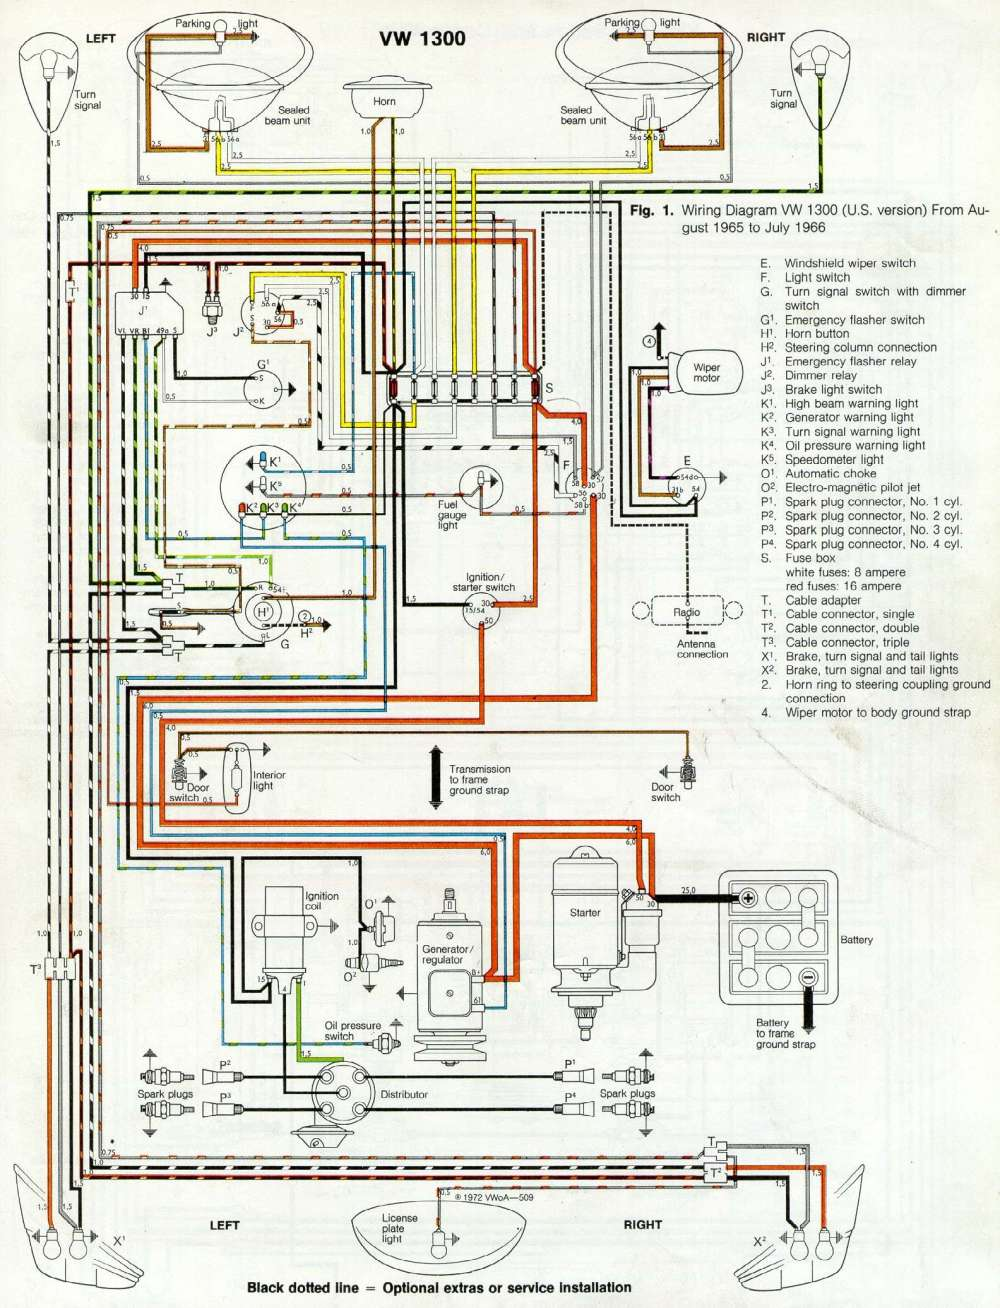 medium resolution of vw polo wiring diagram wiring diagram origin 1971 super beetle wiring diagram vw polo wiring diagram